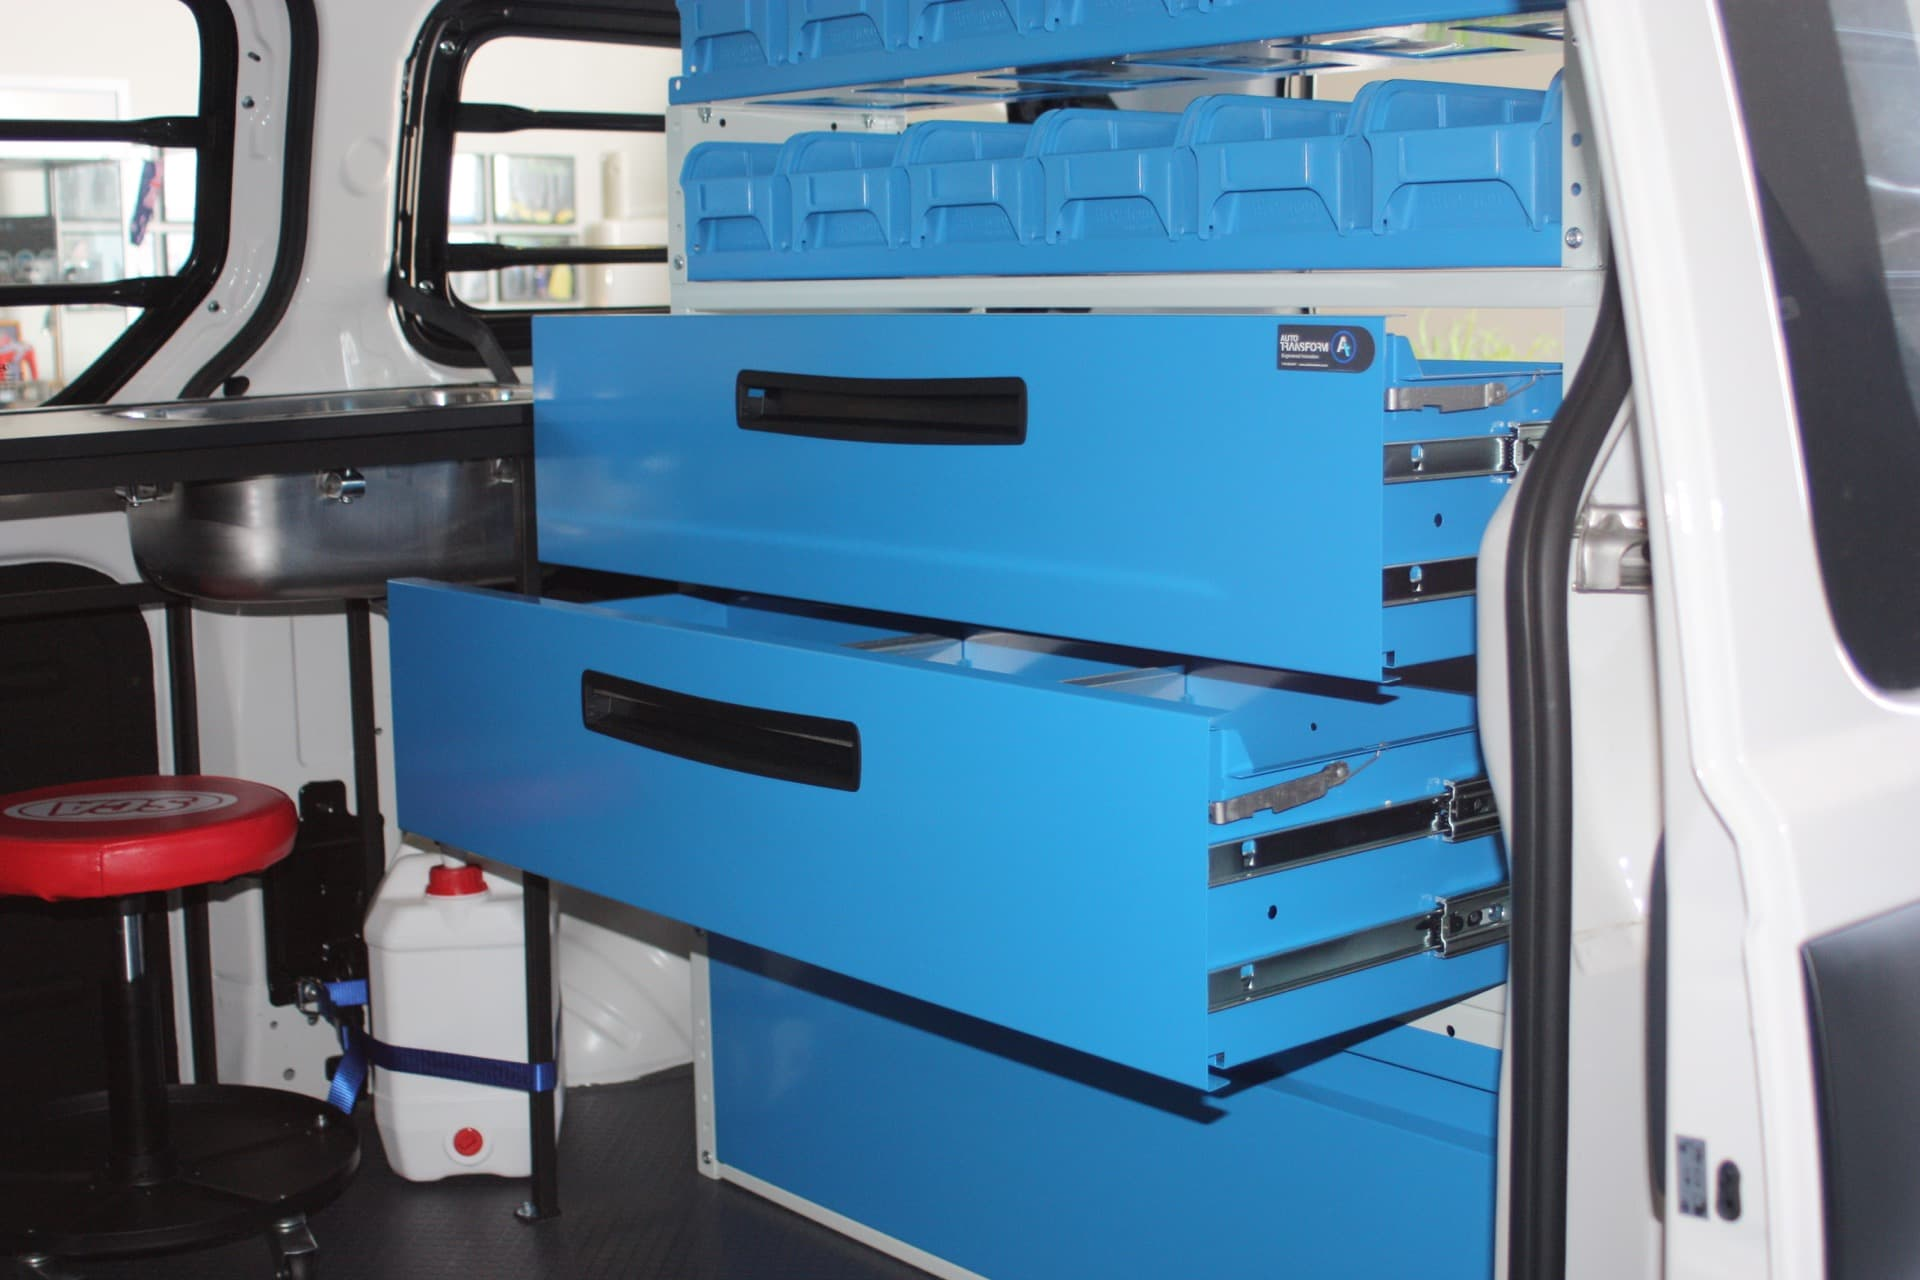 Large drawers for vehicle fitout